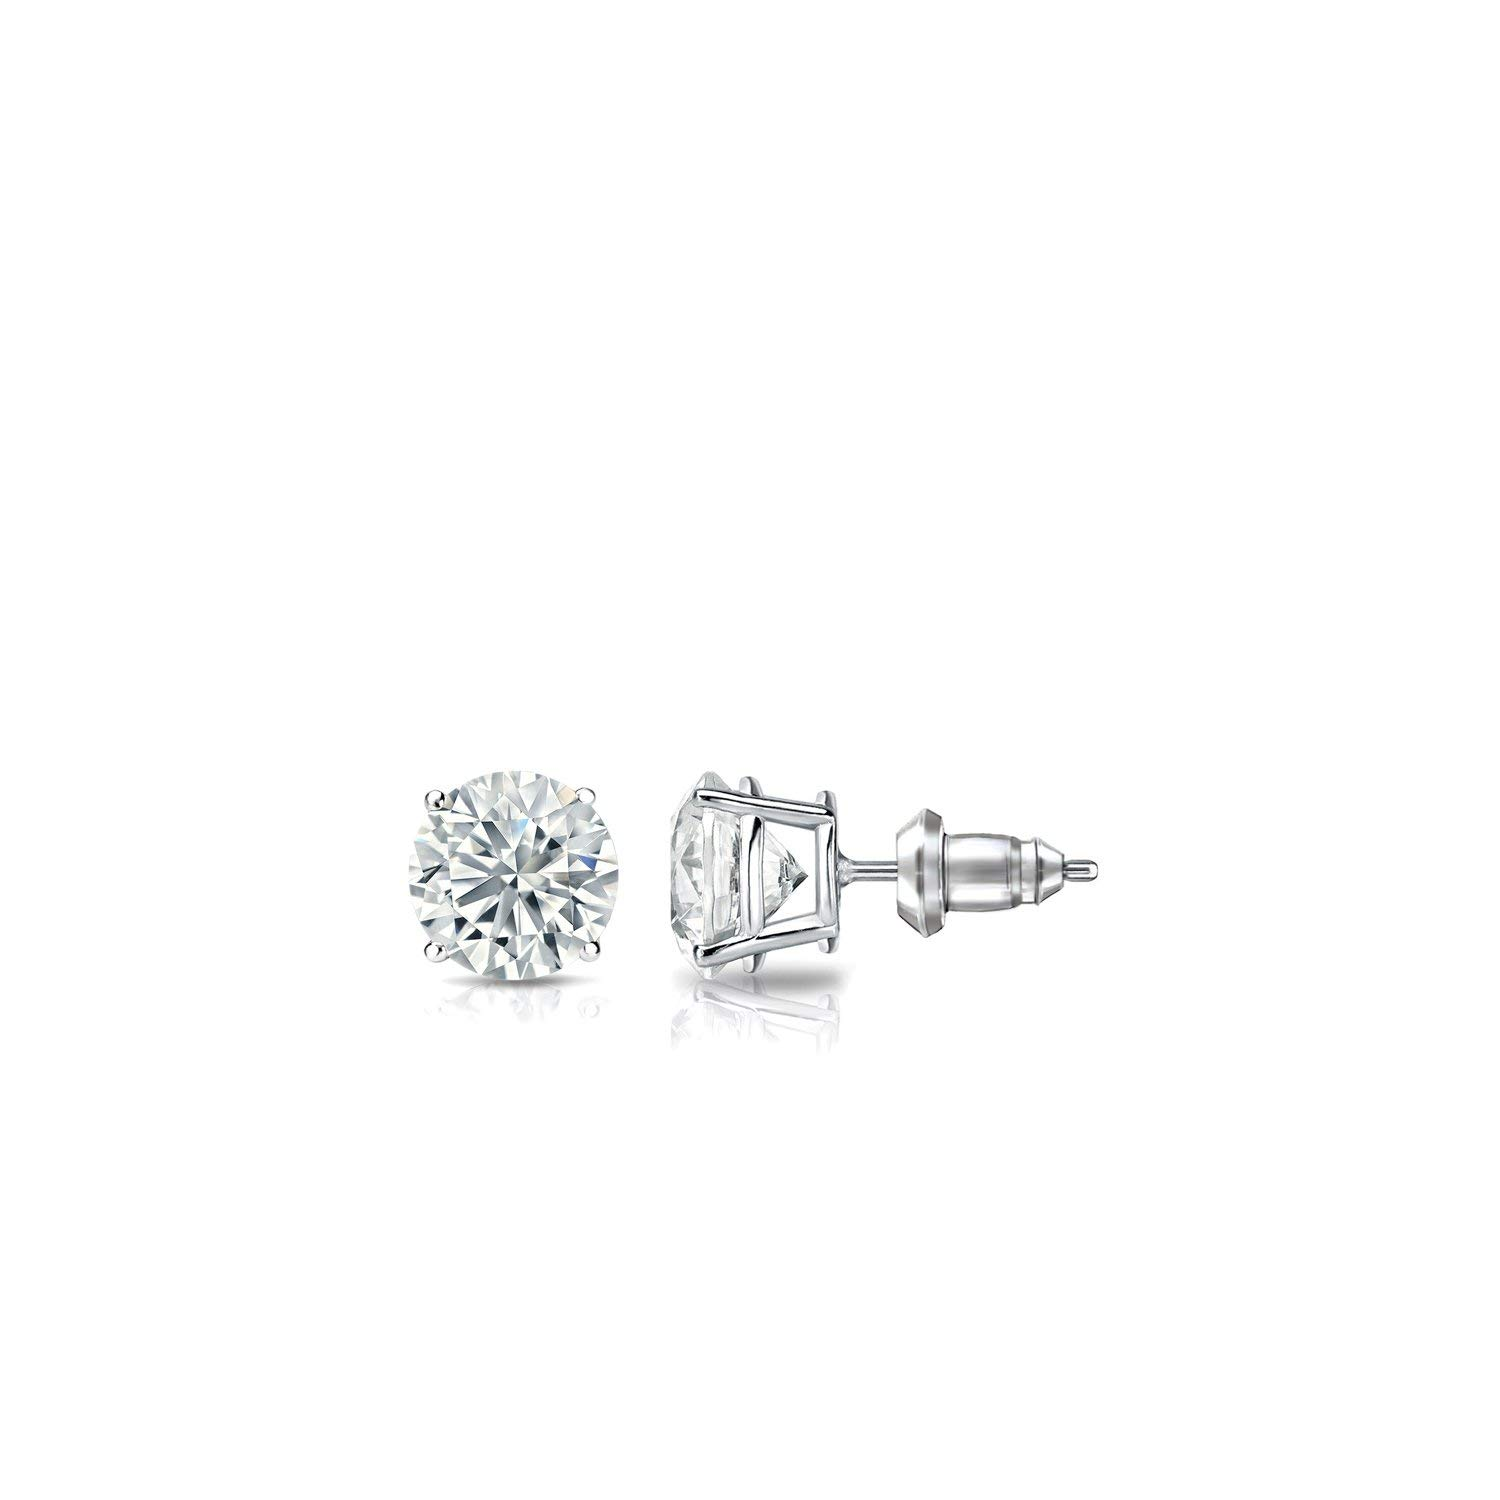 14k Gold 4-Prong Basket Round Diamond Stud Earrings (1/4 - 2 ct, G-H, SI2-I1) Secure Lock Back